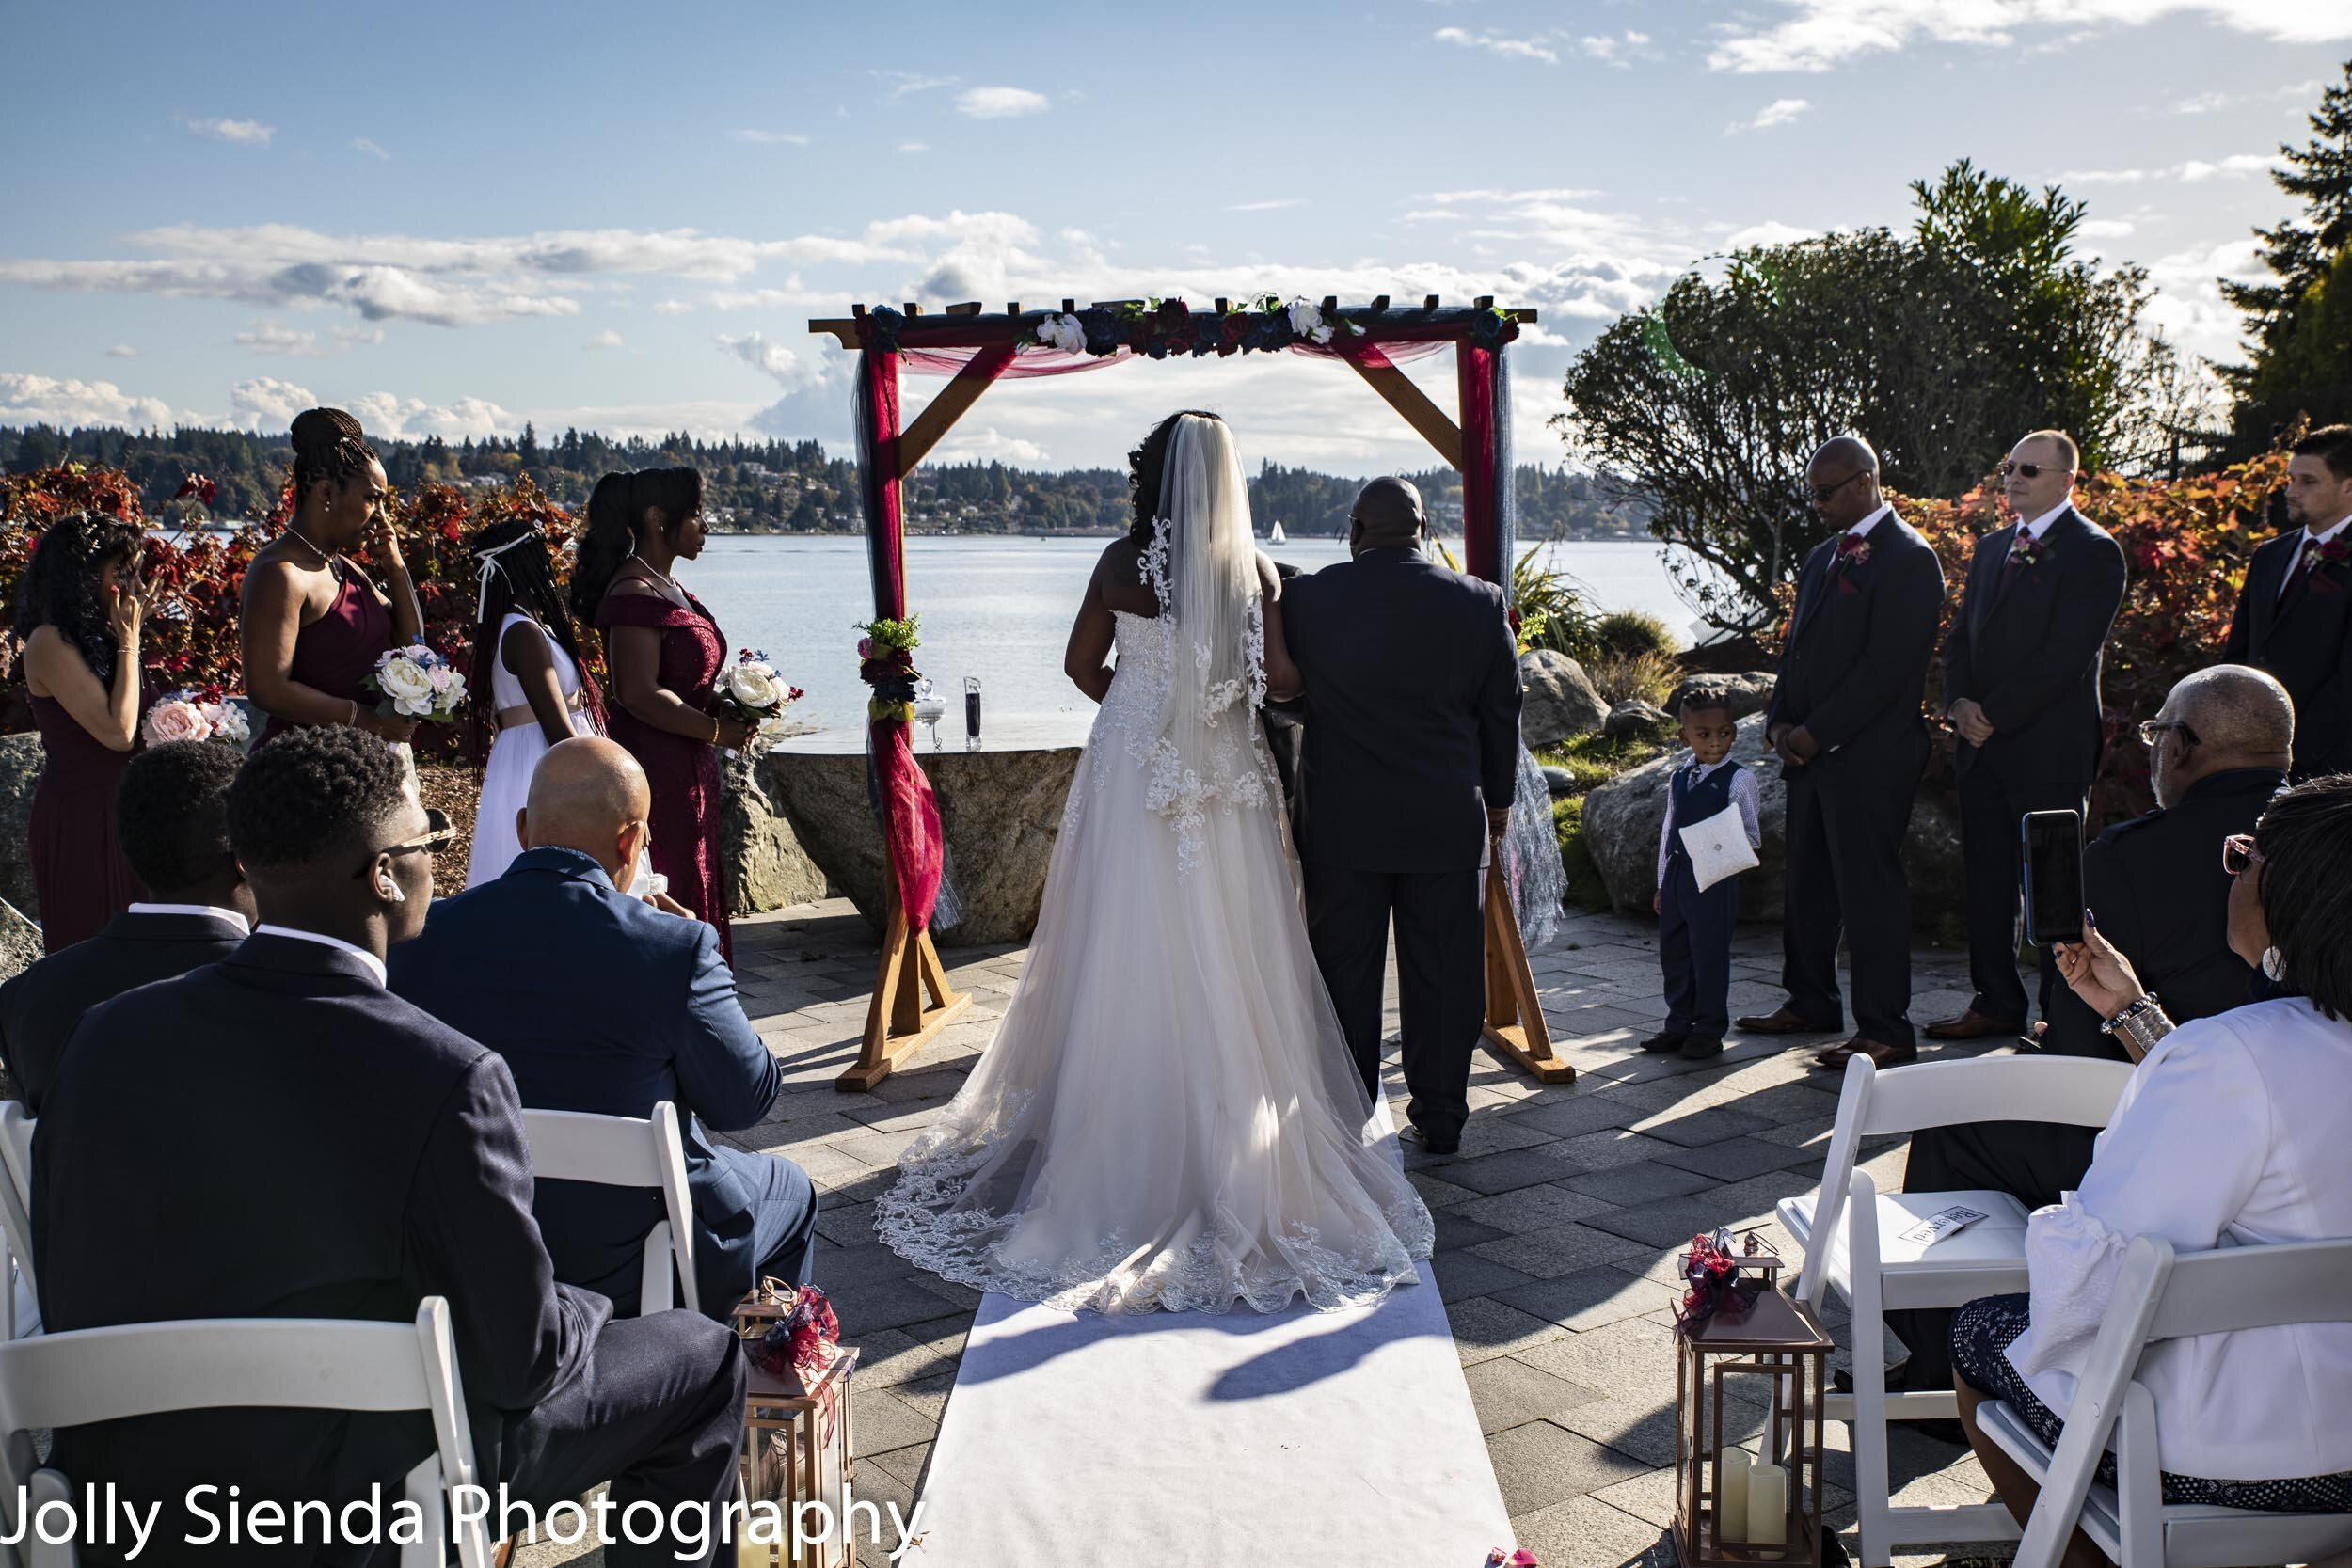 Marina and Malcolm's wedding ceremony